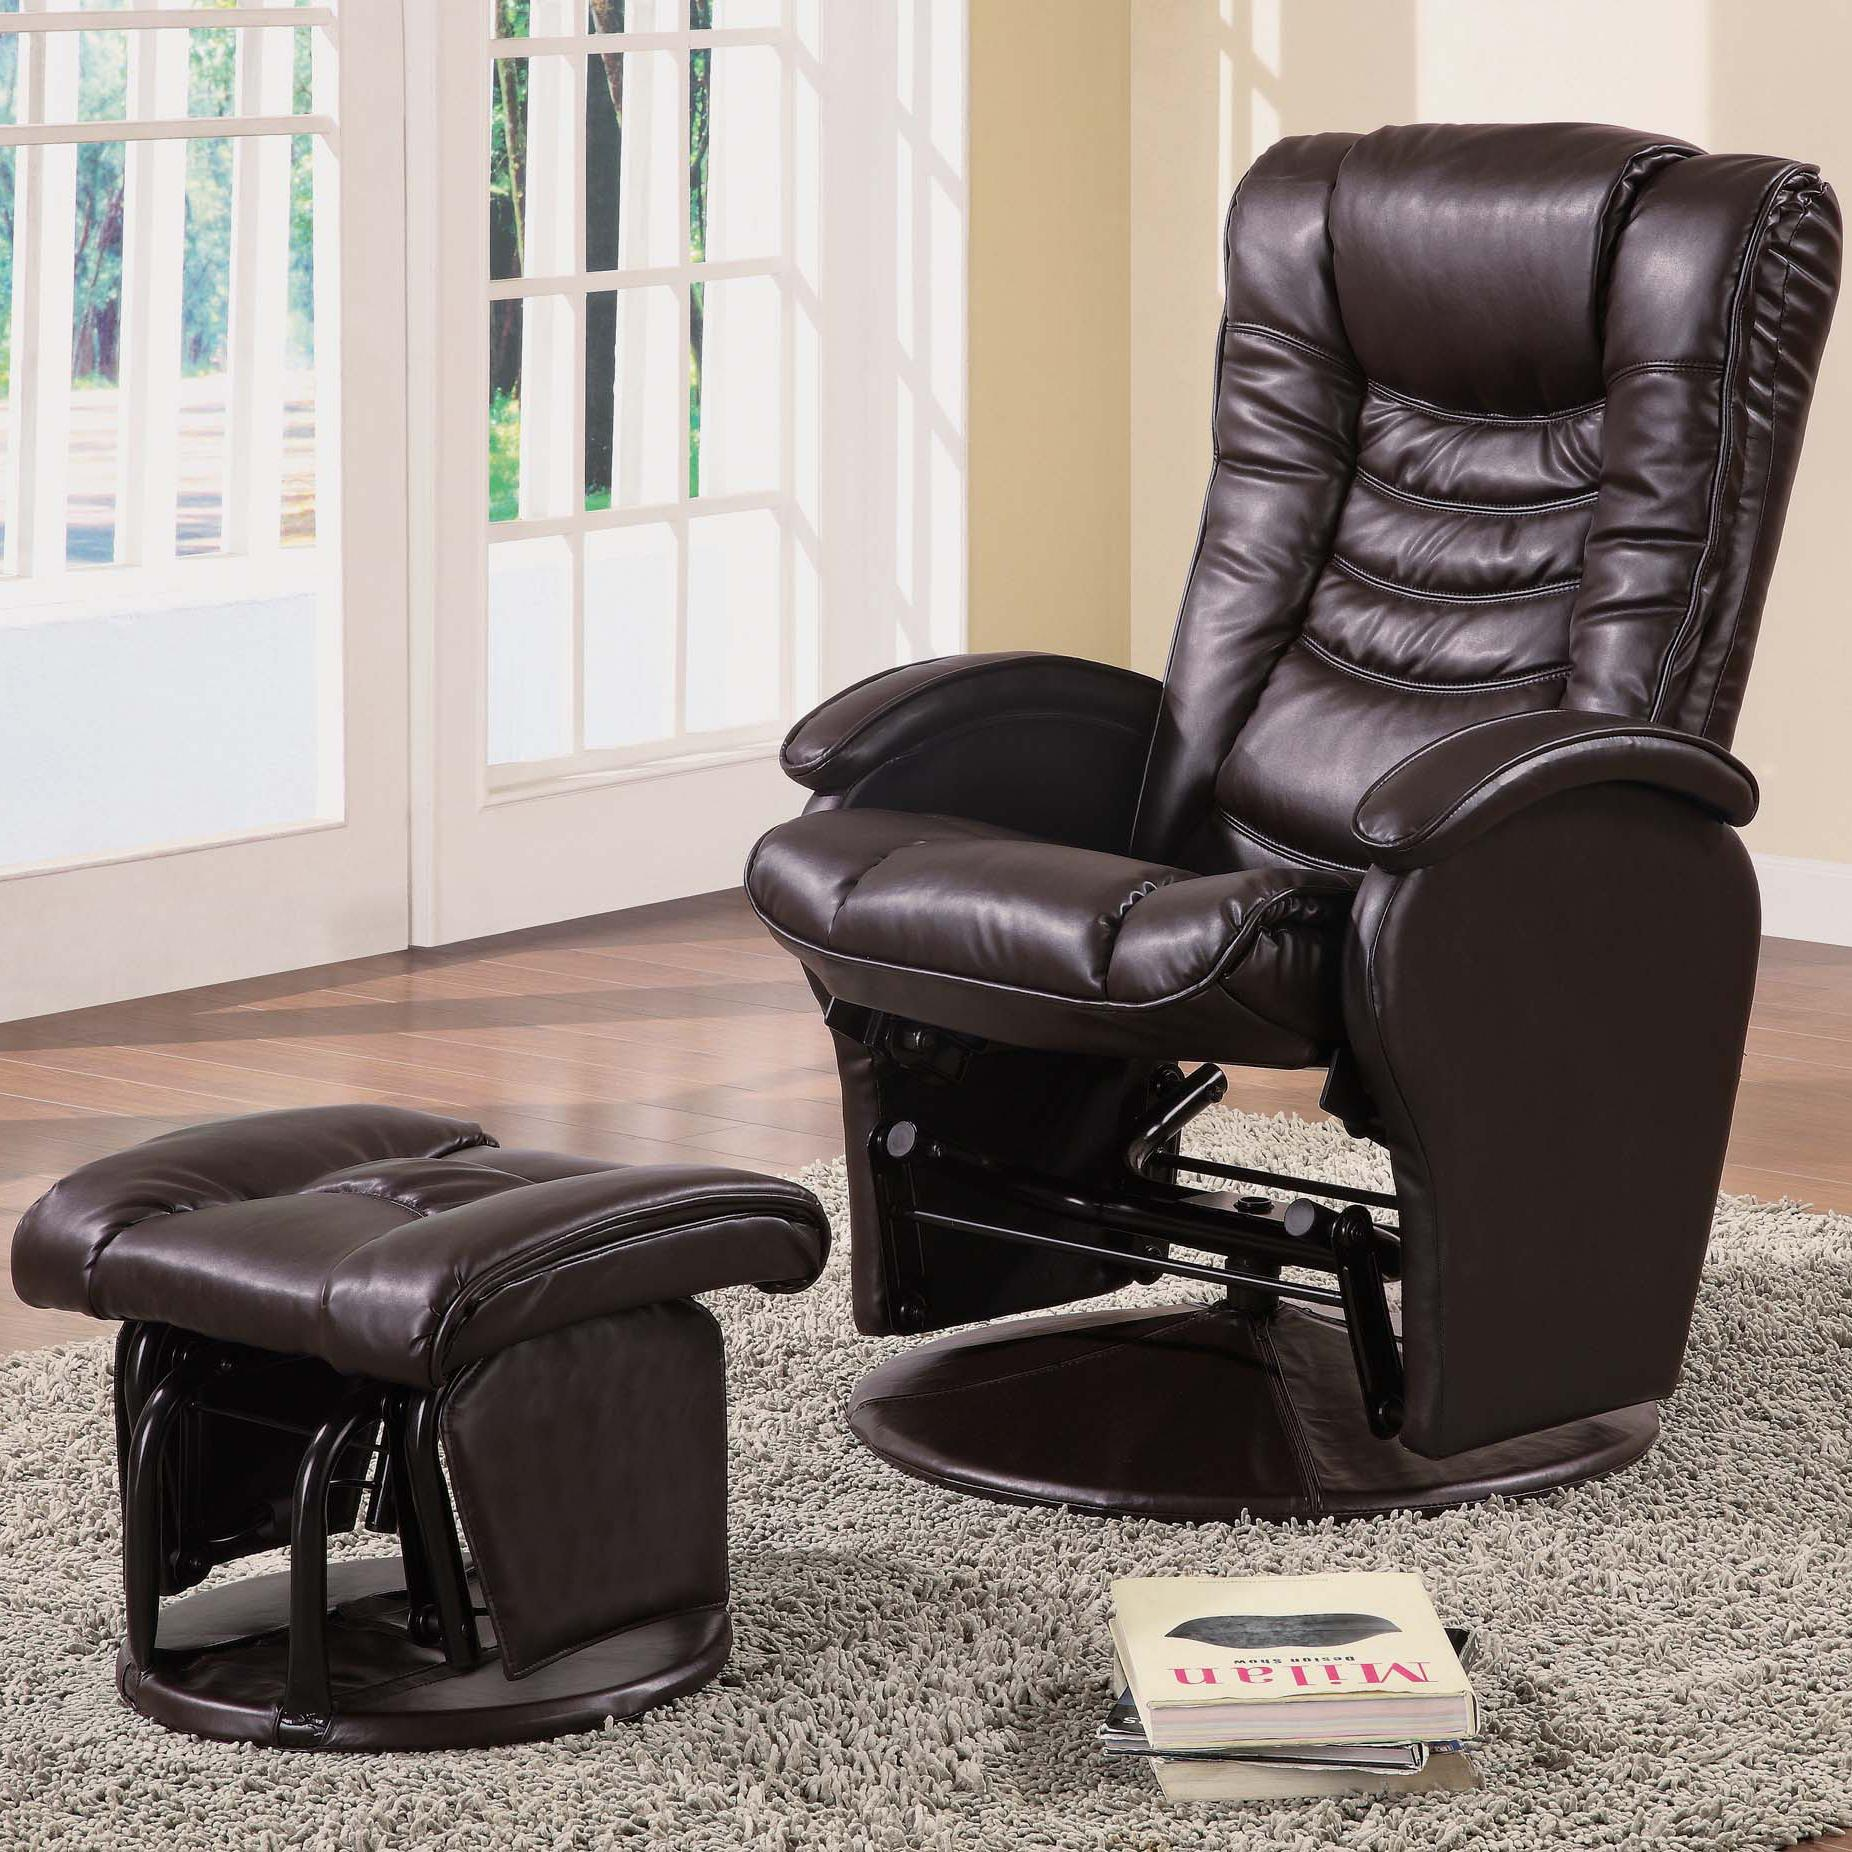 Coaster Recliners With Ottomans Glider Recliner With Ottoman   Item Number:  600165